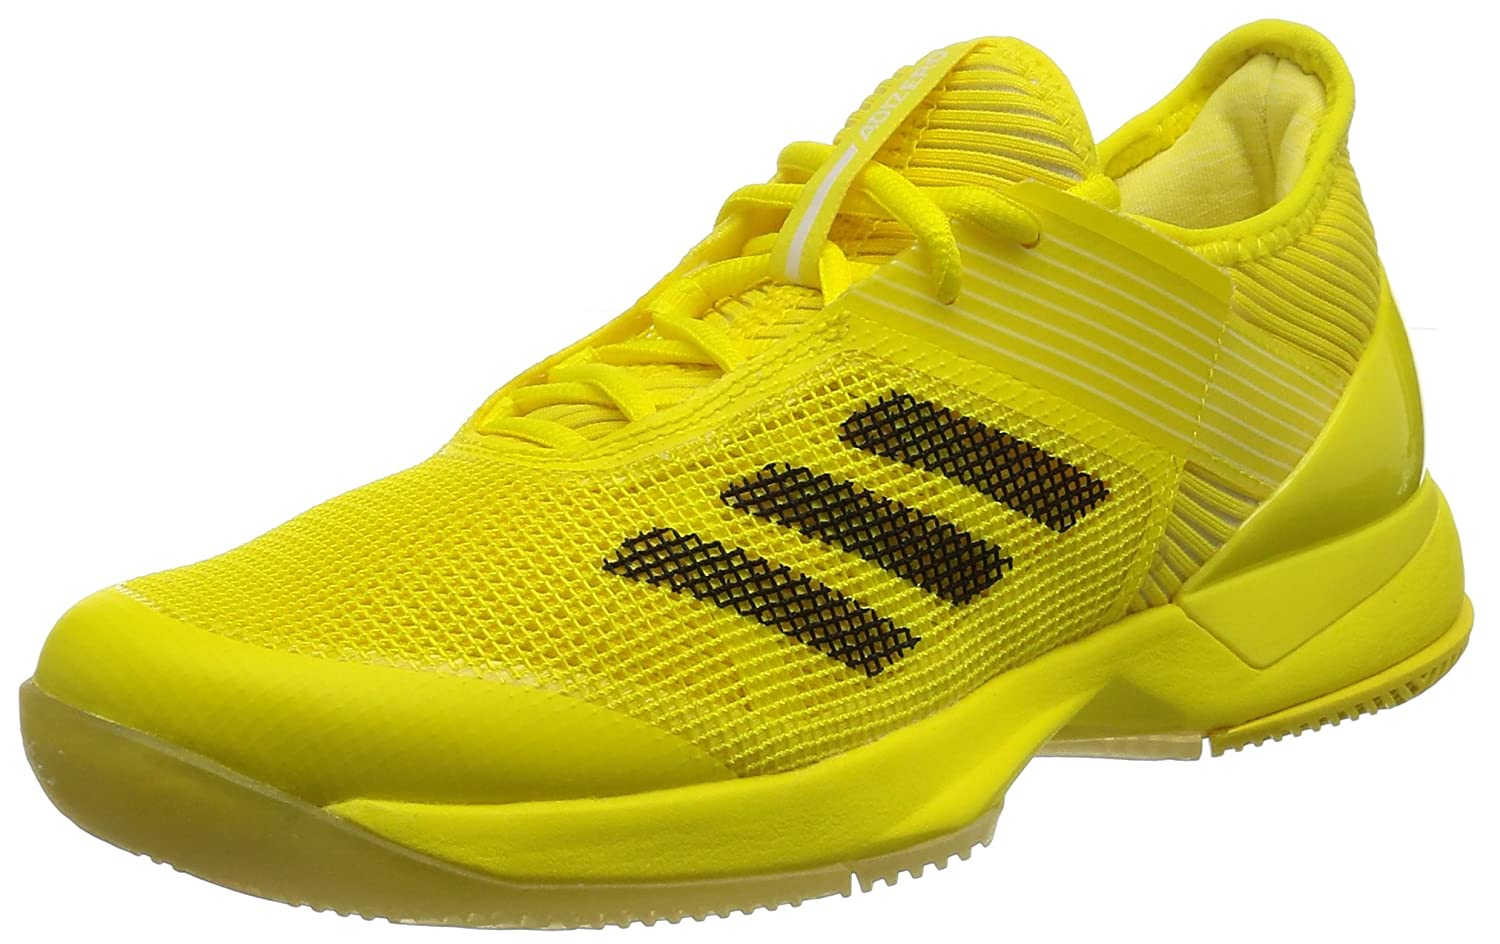 adidas Performance Womens Adizero Ubersonic 3 Tennis Trainers - Yellow